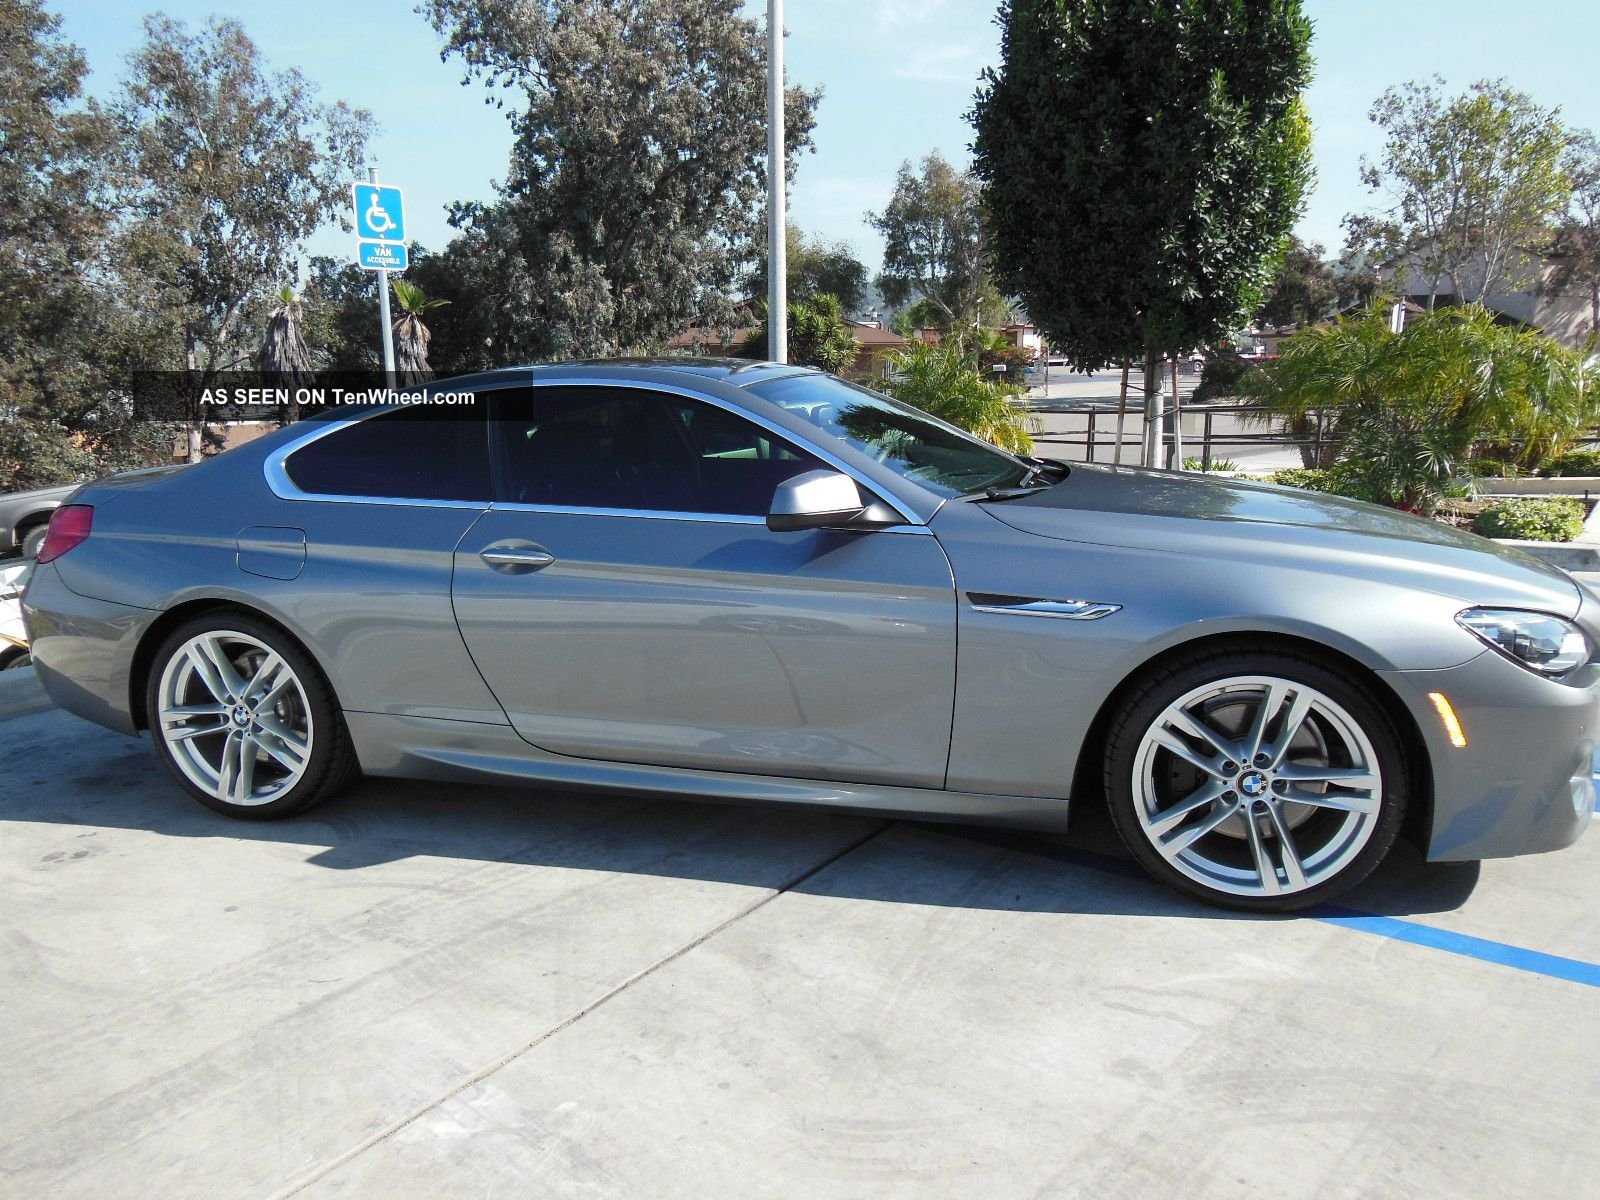 2012 Bmw 650i Coupe Space Gray Fully Loaded Sport Package 6-Series photo